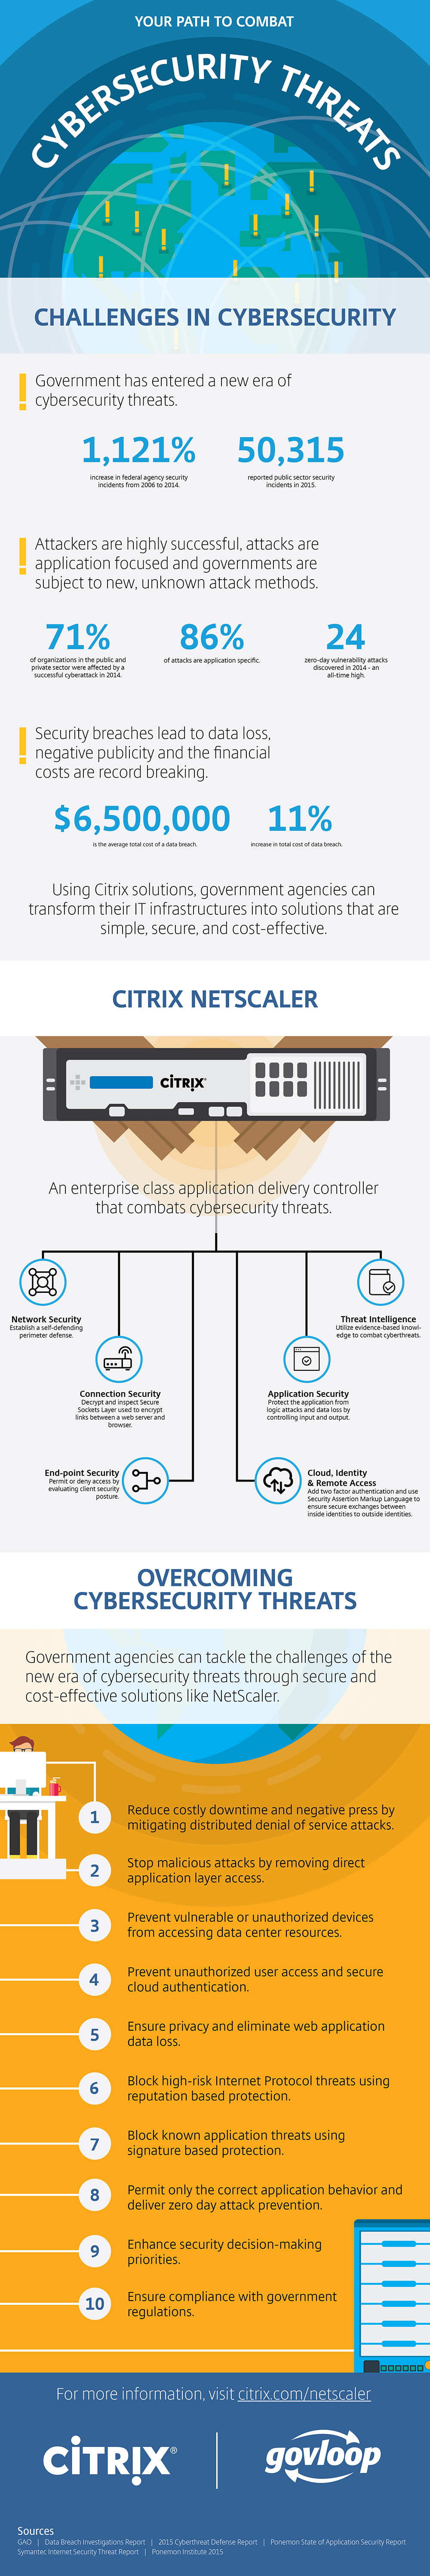 citrix cybersecurity_R3